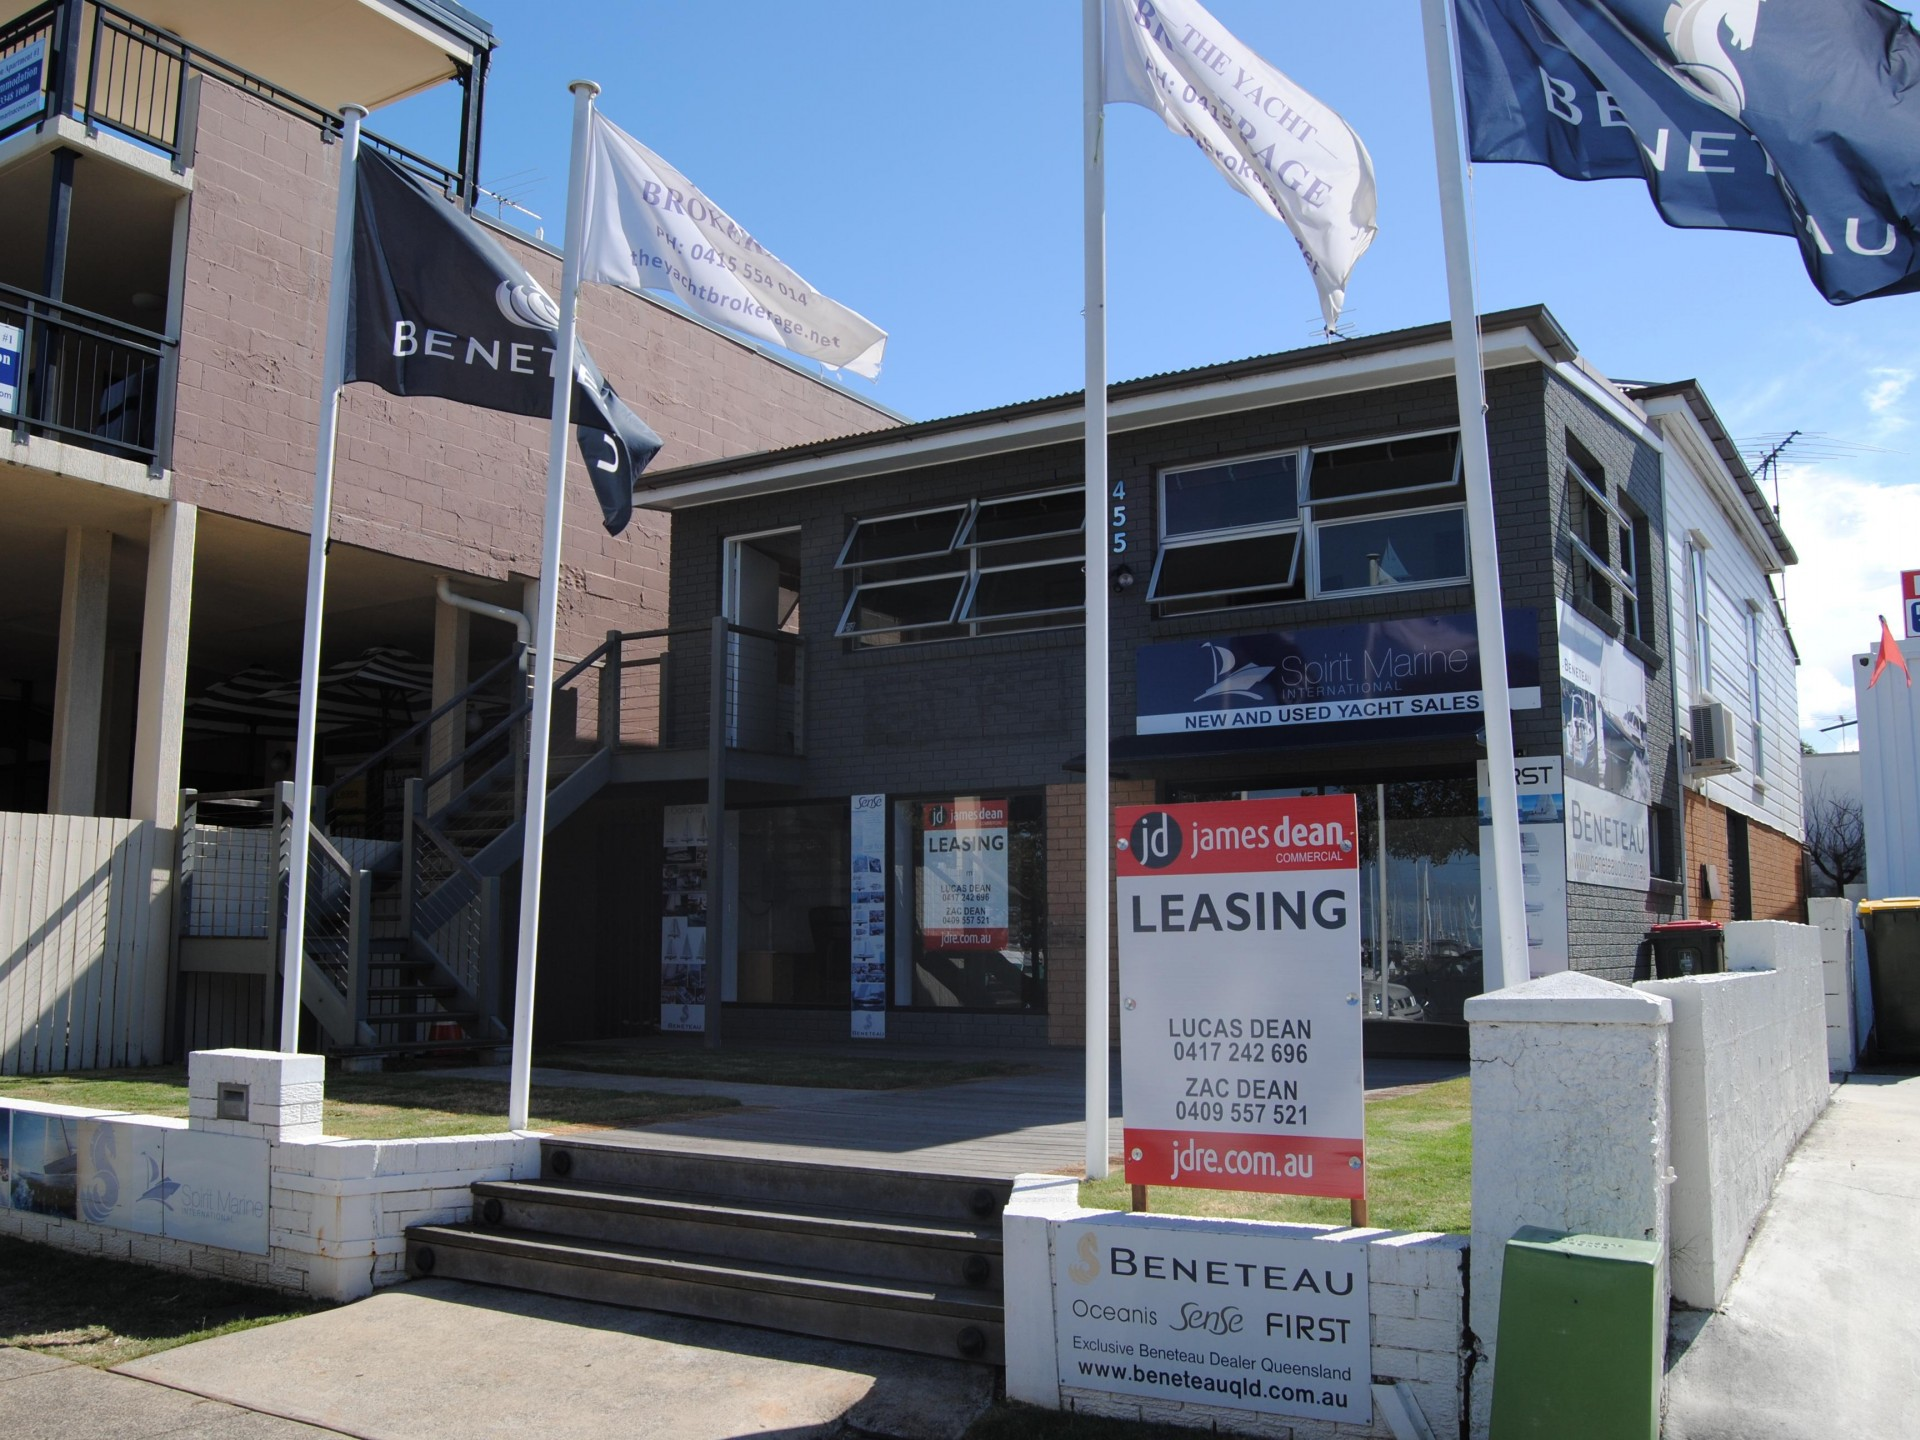 PRIME WATERFRONT RETAIL OPPORTUNITY - CALL NOW OR MISS OUT!